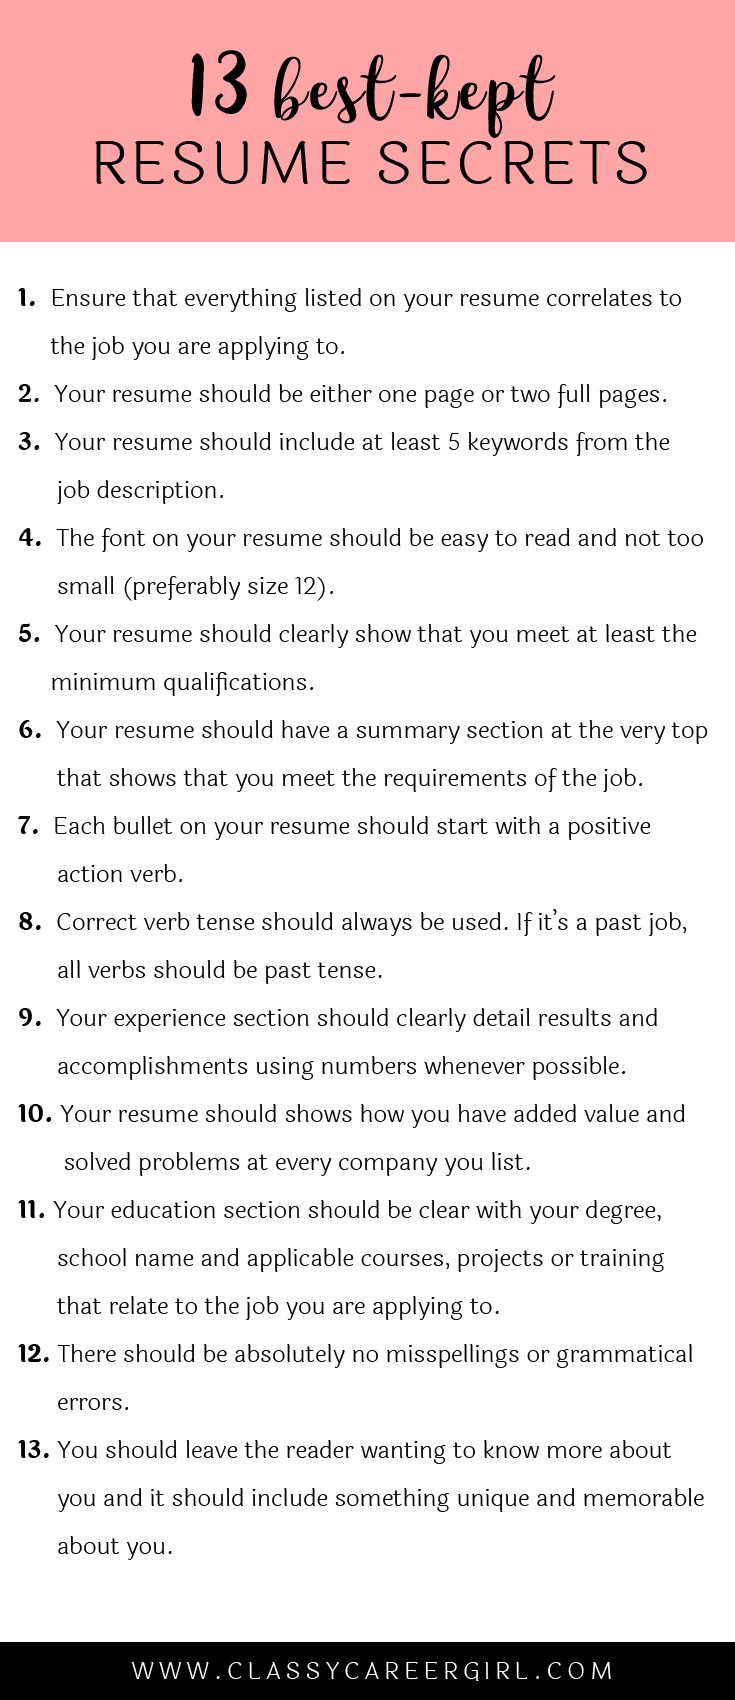 Opposenewapstandardsus  Scenic  Ideas About Resume On Pinterest  Cv Format Resume Cv And  With Glamorous Some Hiring Managers Will Toss Your Resume Out If You Dont Know These  With Awesome Qualifications Resume Also Create Online Resume In Addition Easy Resume Format And Text Resume As Well As Real Estate Broker Resume Additionally Resume Work History From Pinterestcom With Opposenewapstandardsus  Glamorous  Ideas About Resume On Pinterest  Cv Format Resume Cv And  With Awesome Some Hiring Managers Will Toss Your Resume Out If You Dont Know These  And Scenic Qualifications Resume Also Create Online Resume In Addition Easy Resume Format From Pinterestcom